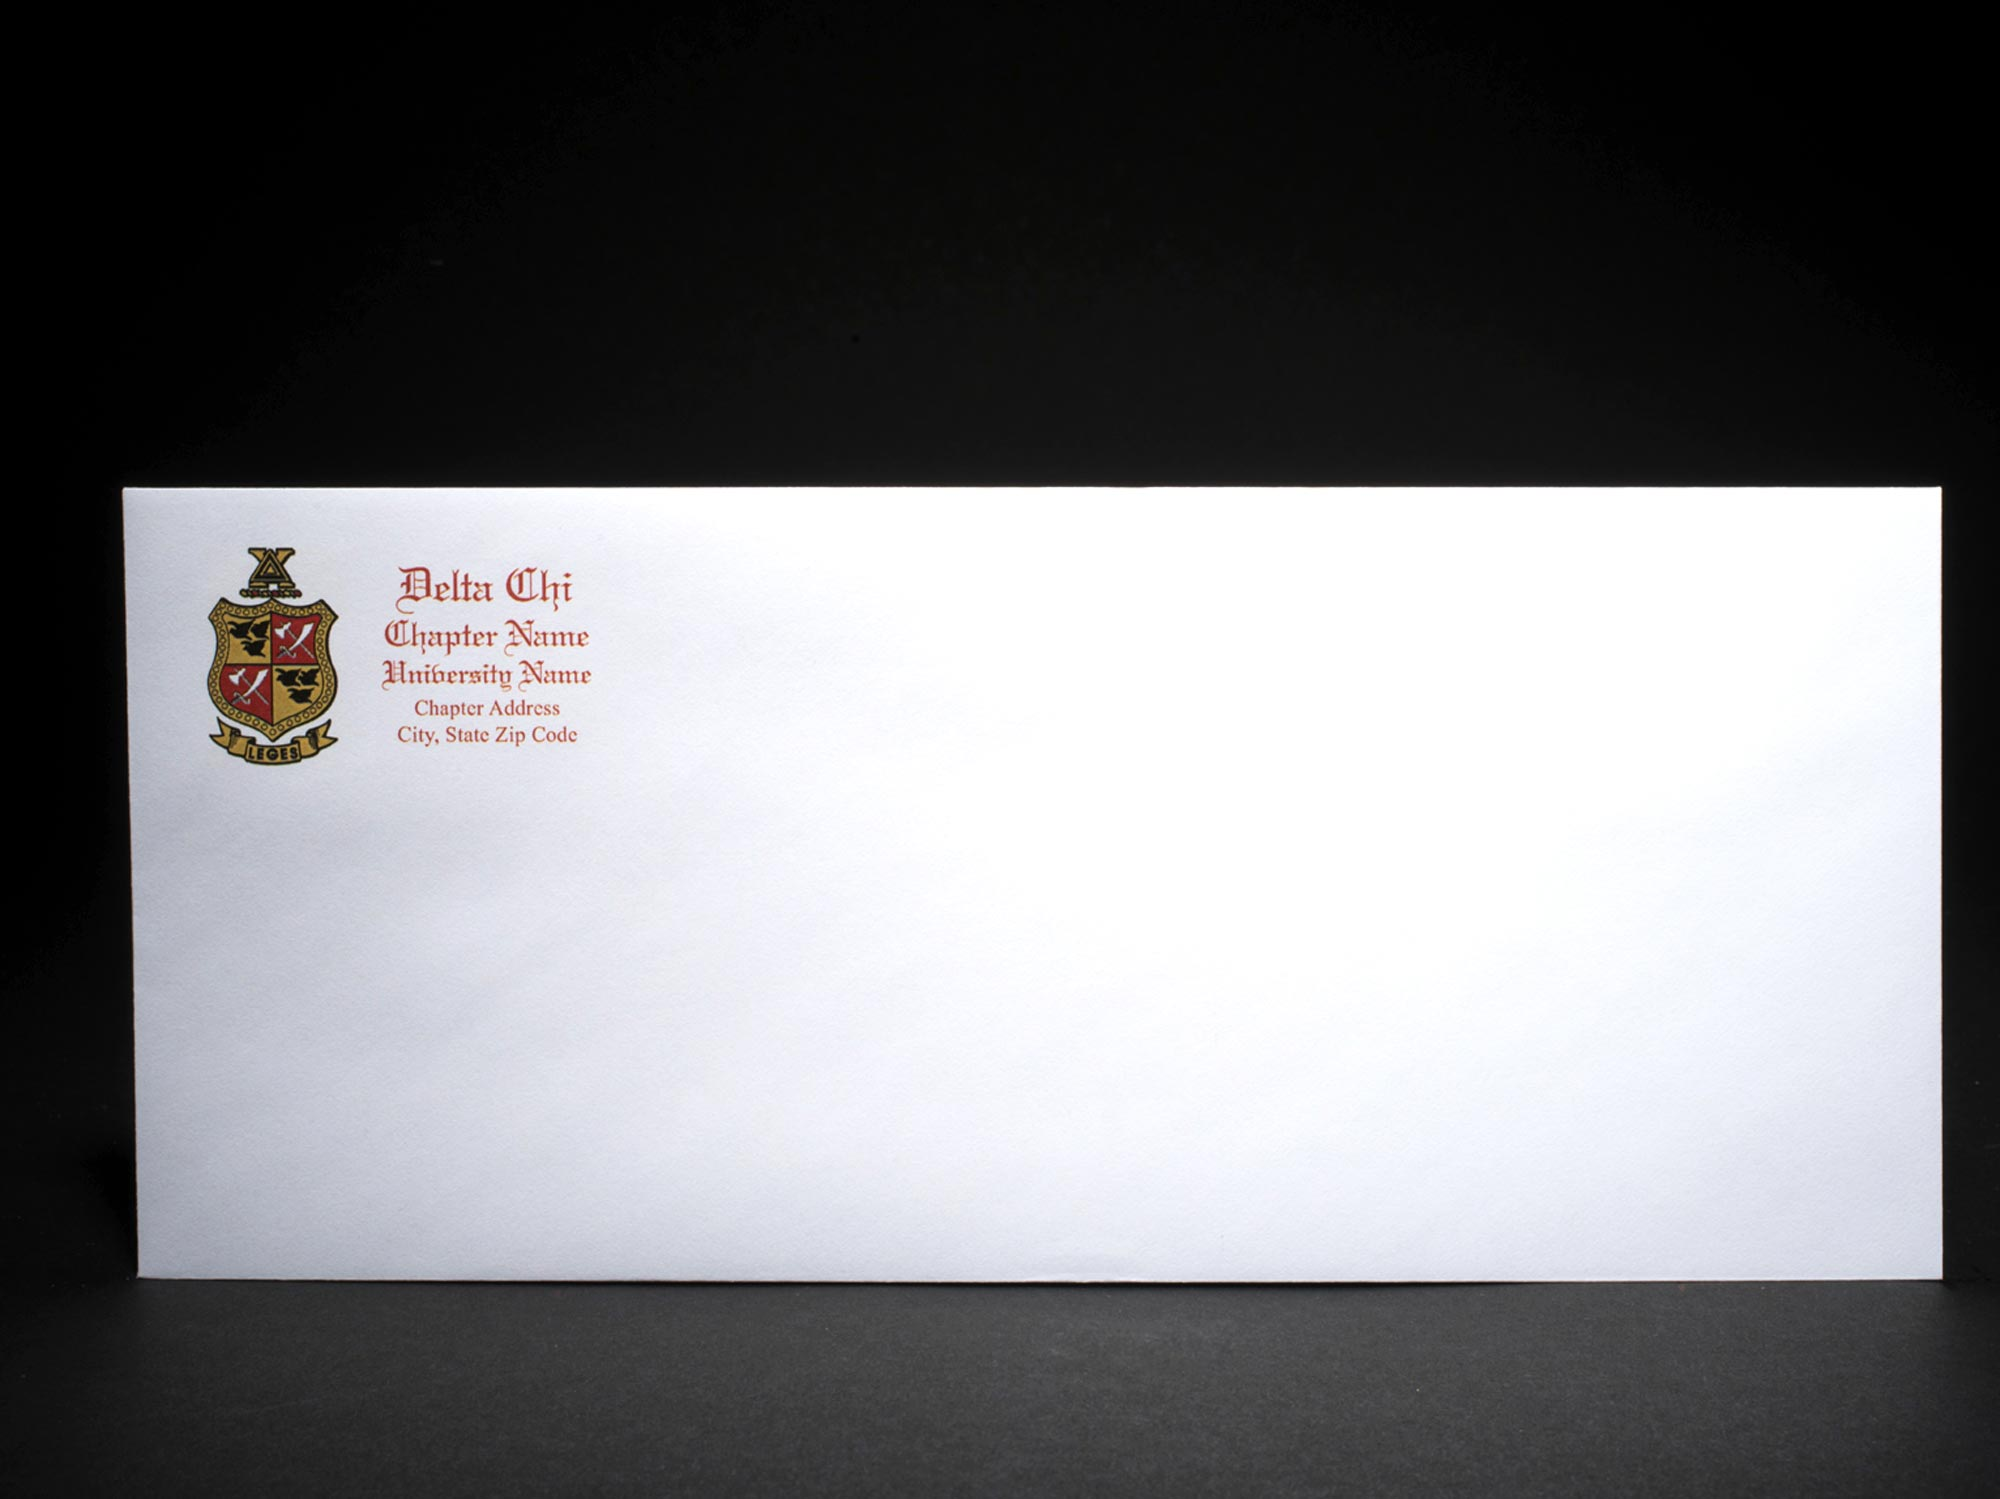 Business Size Envelopes Delta Chi